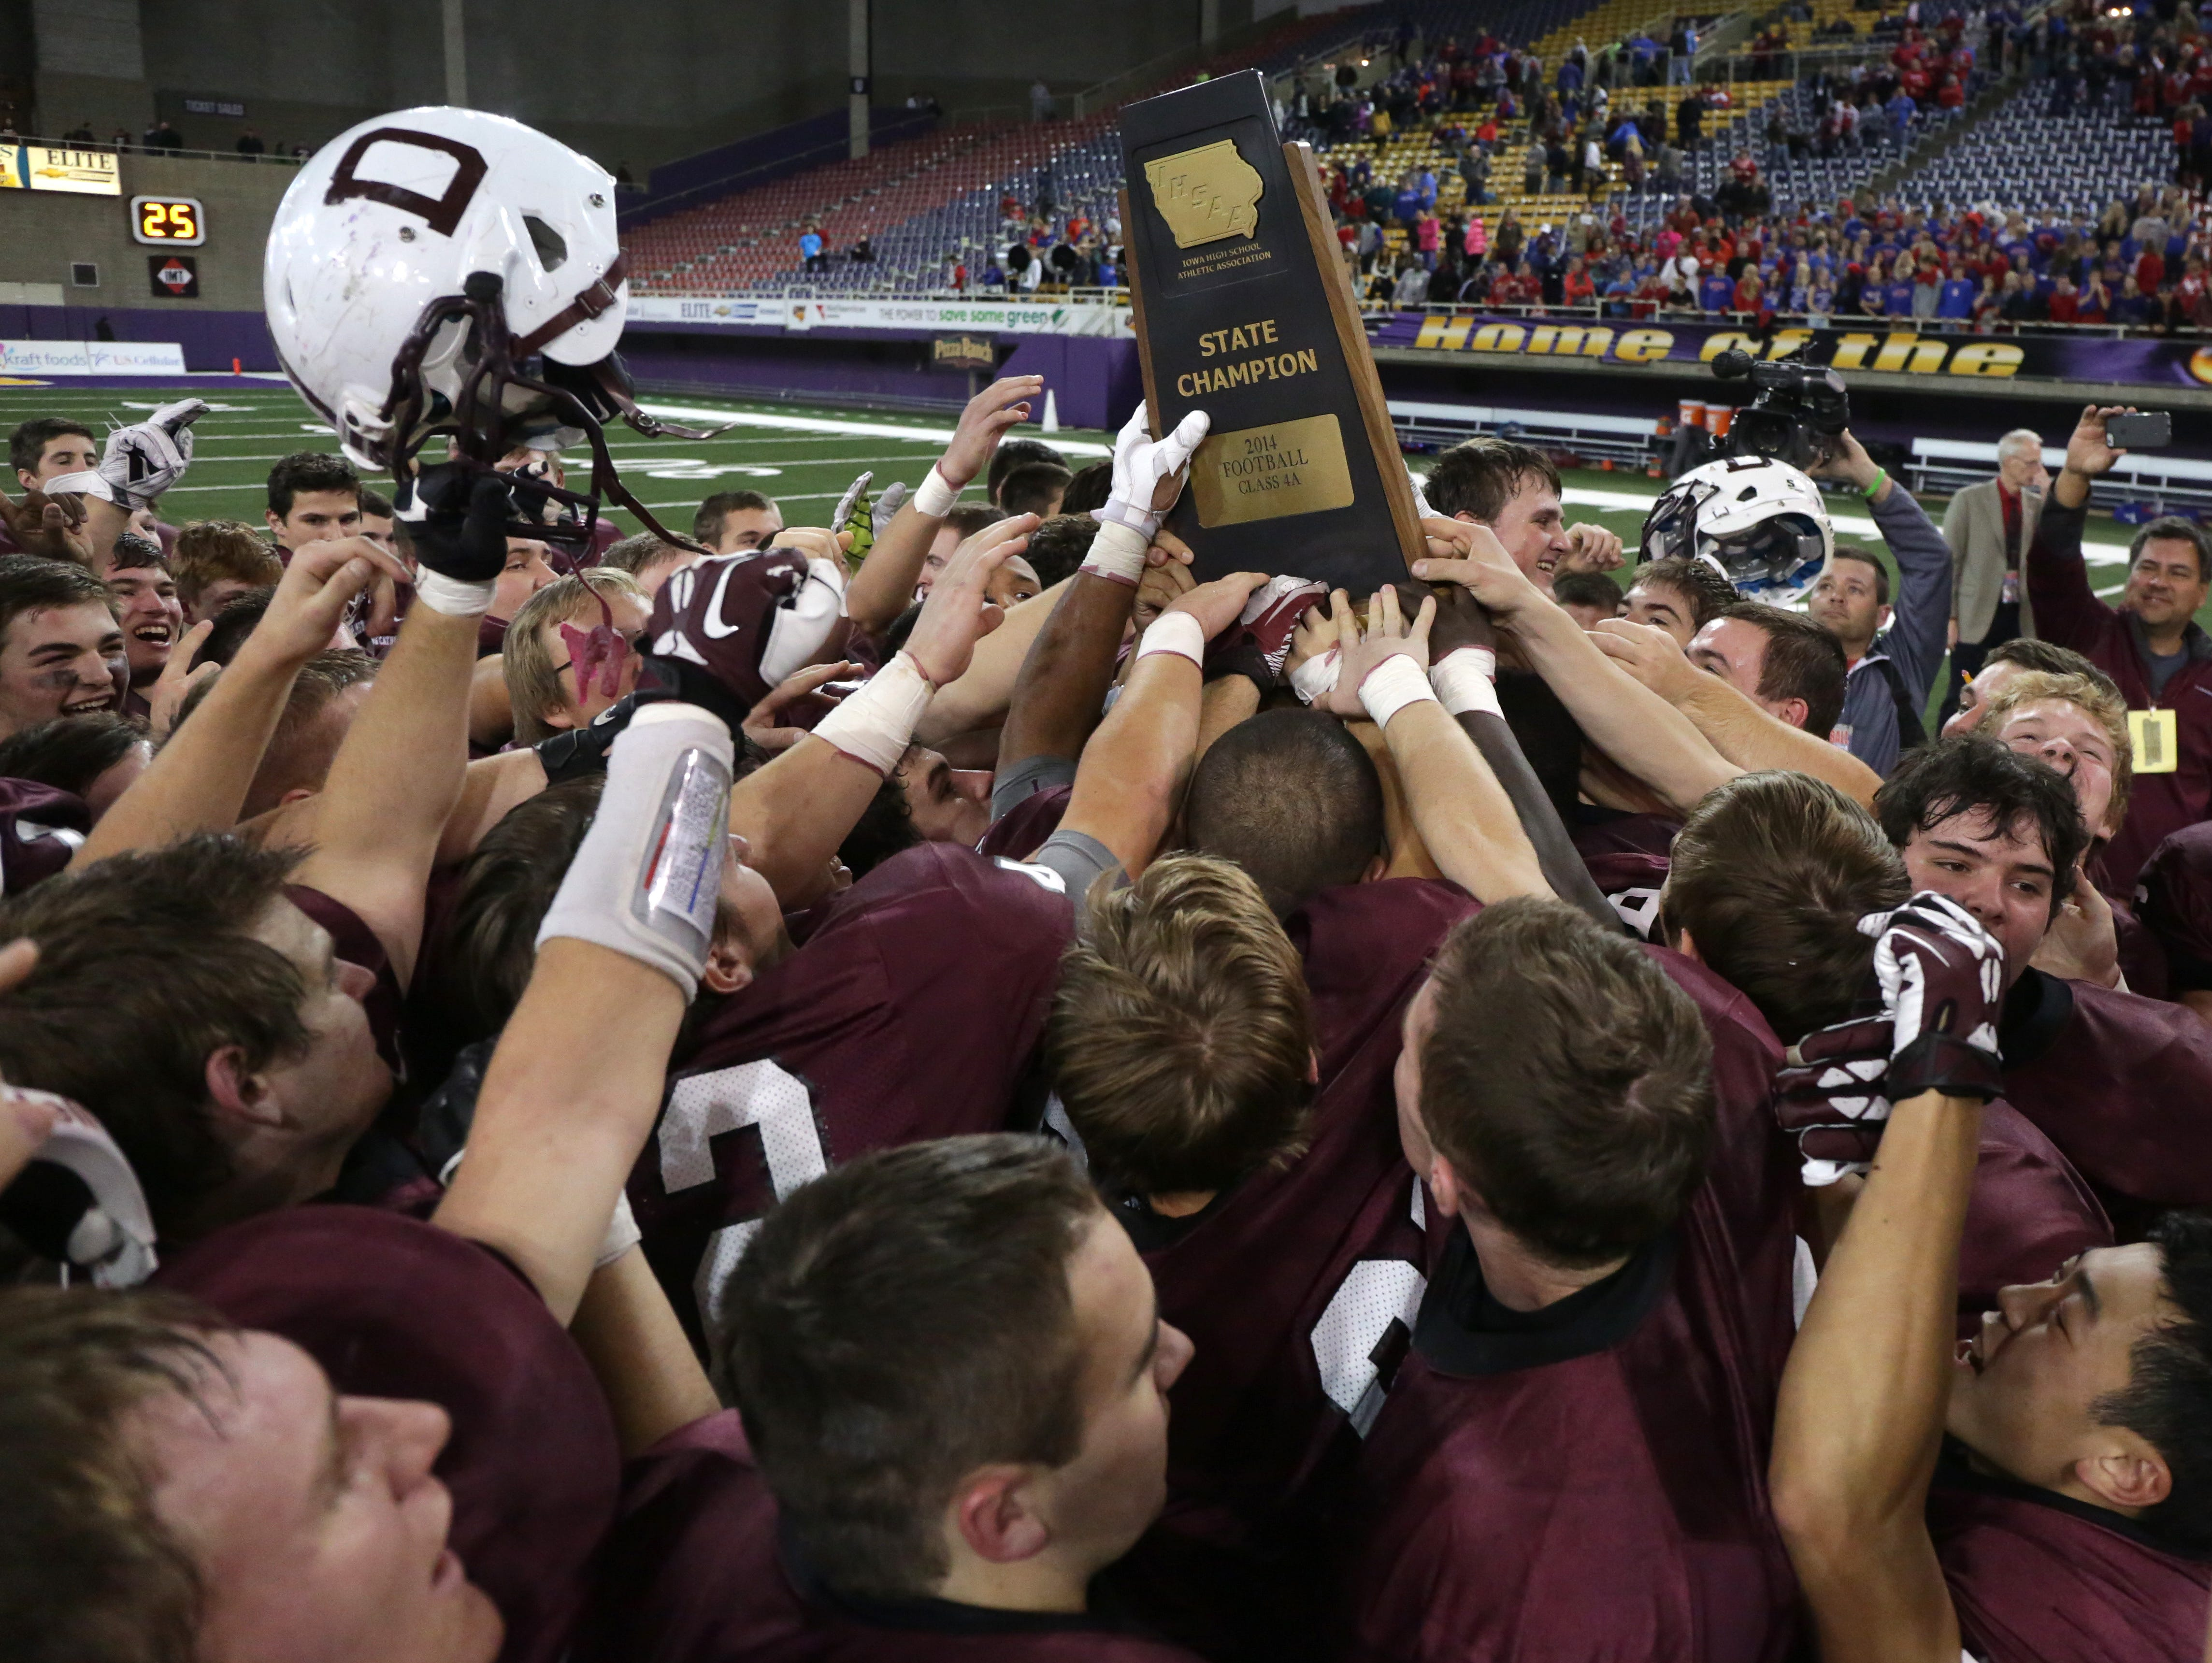 Members of the Dowling Catholic football team celebrate with their trophy after a win over Cedar Rapids Washington in the Iowa Class 4A state football championship game on Friday, Nov. 21, 2014, at the UNI-Dome in Cedar Falls, Iowa.